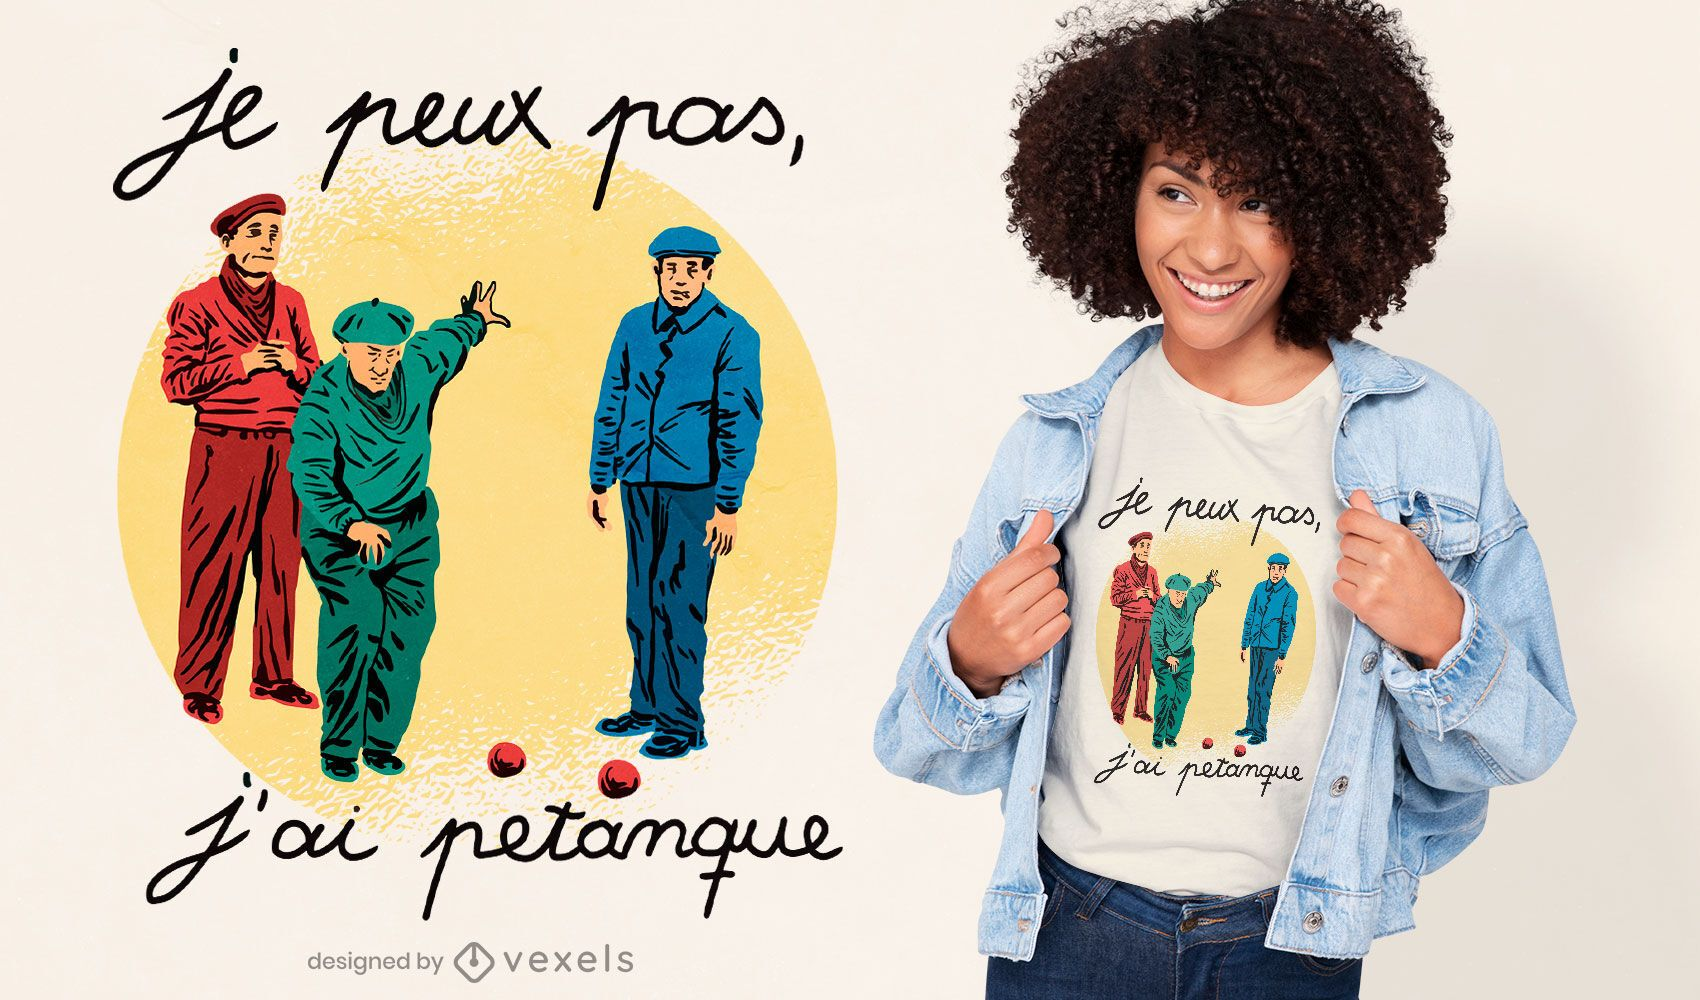 Petanque french quote t-shirt design